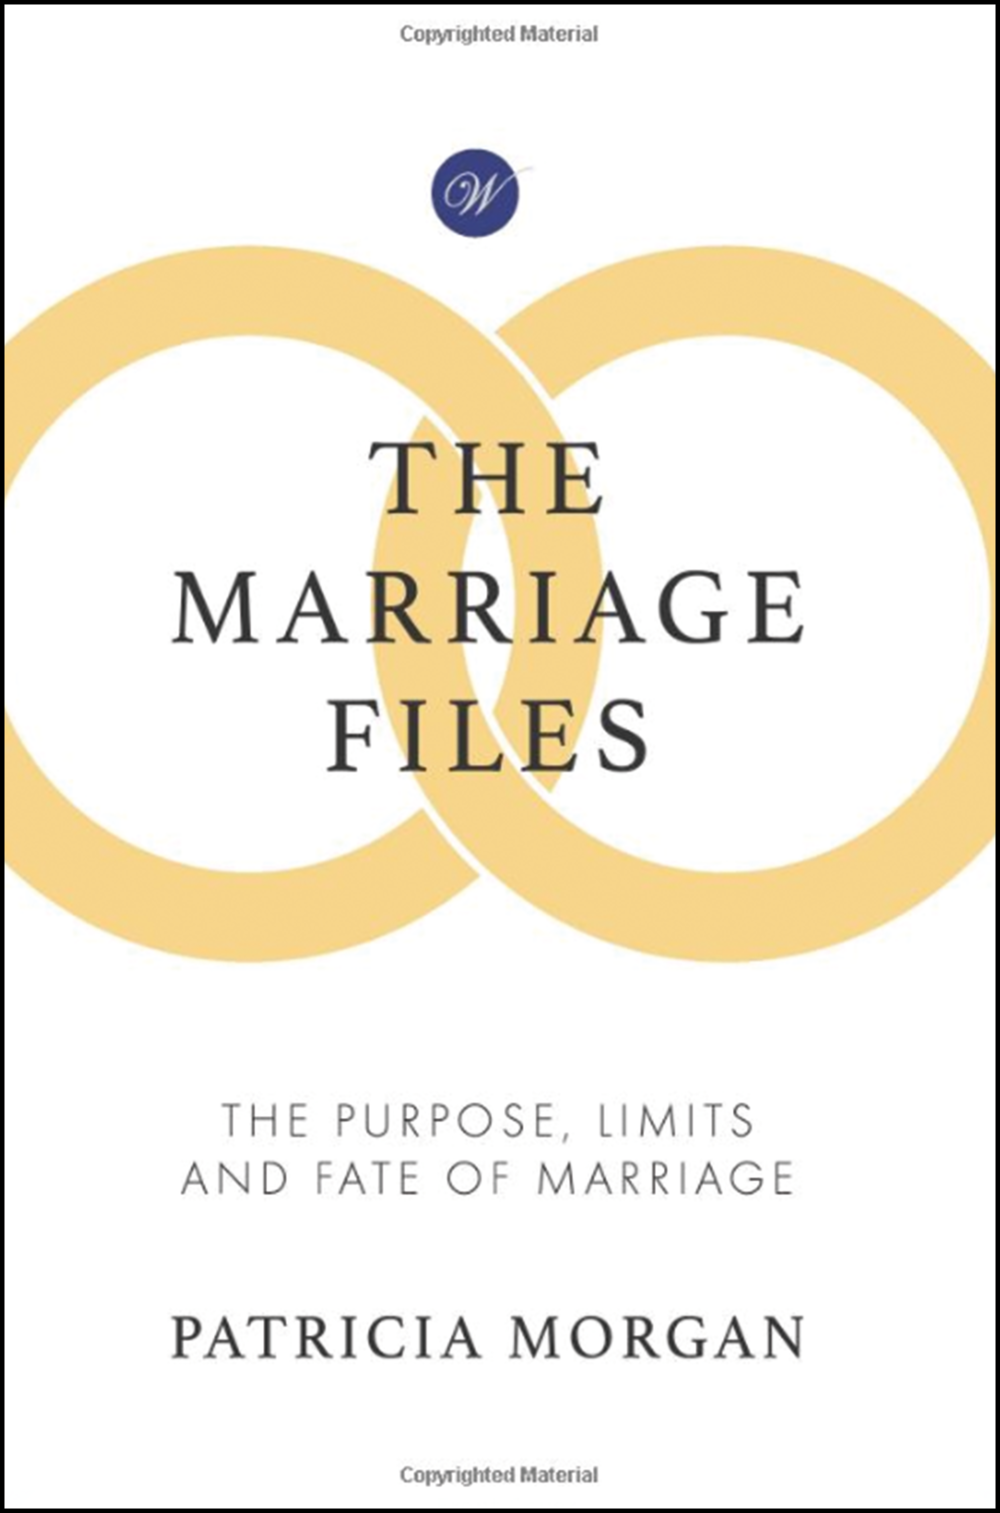 The Marriage Files - A sociological study of the limits and future of marriage after 'equal' marriage